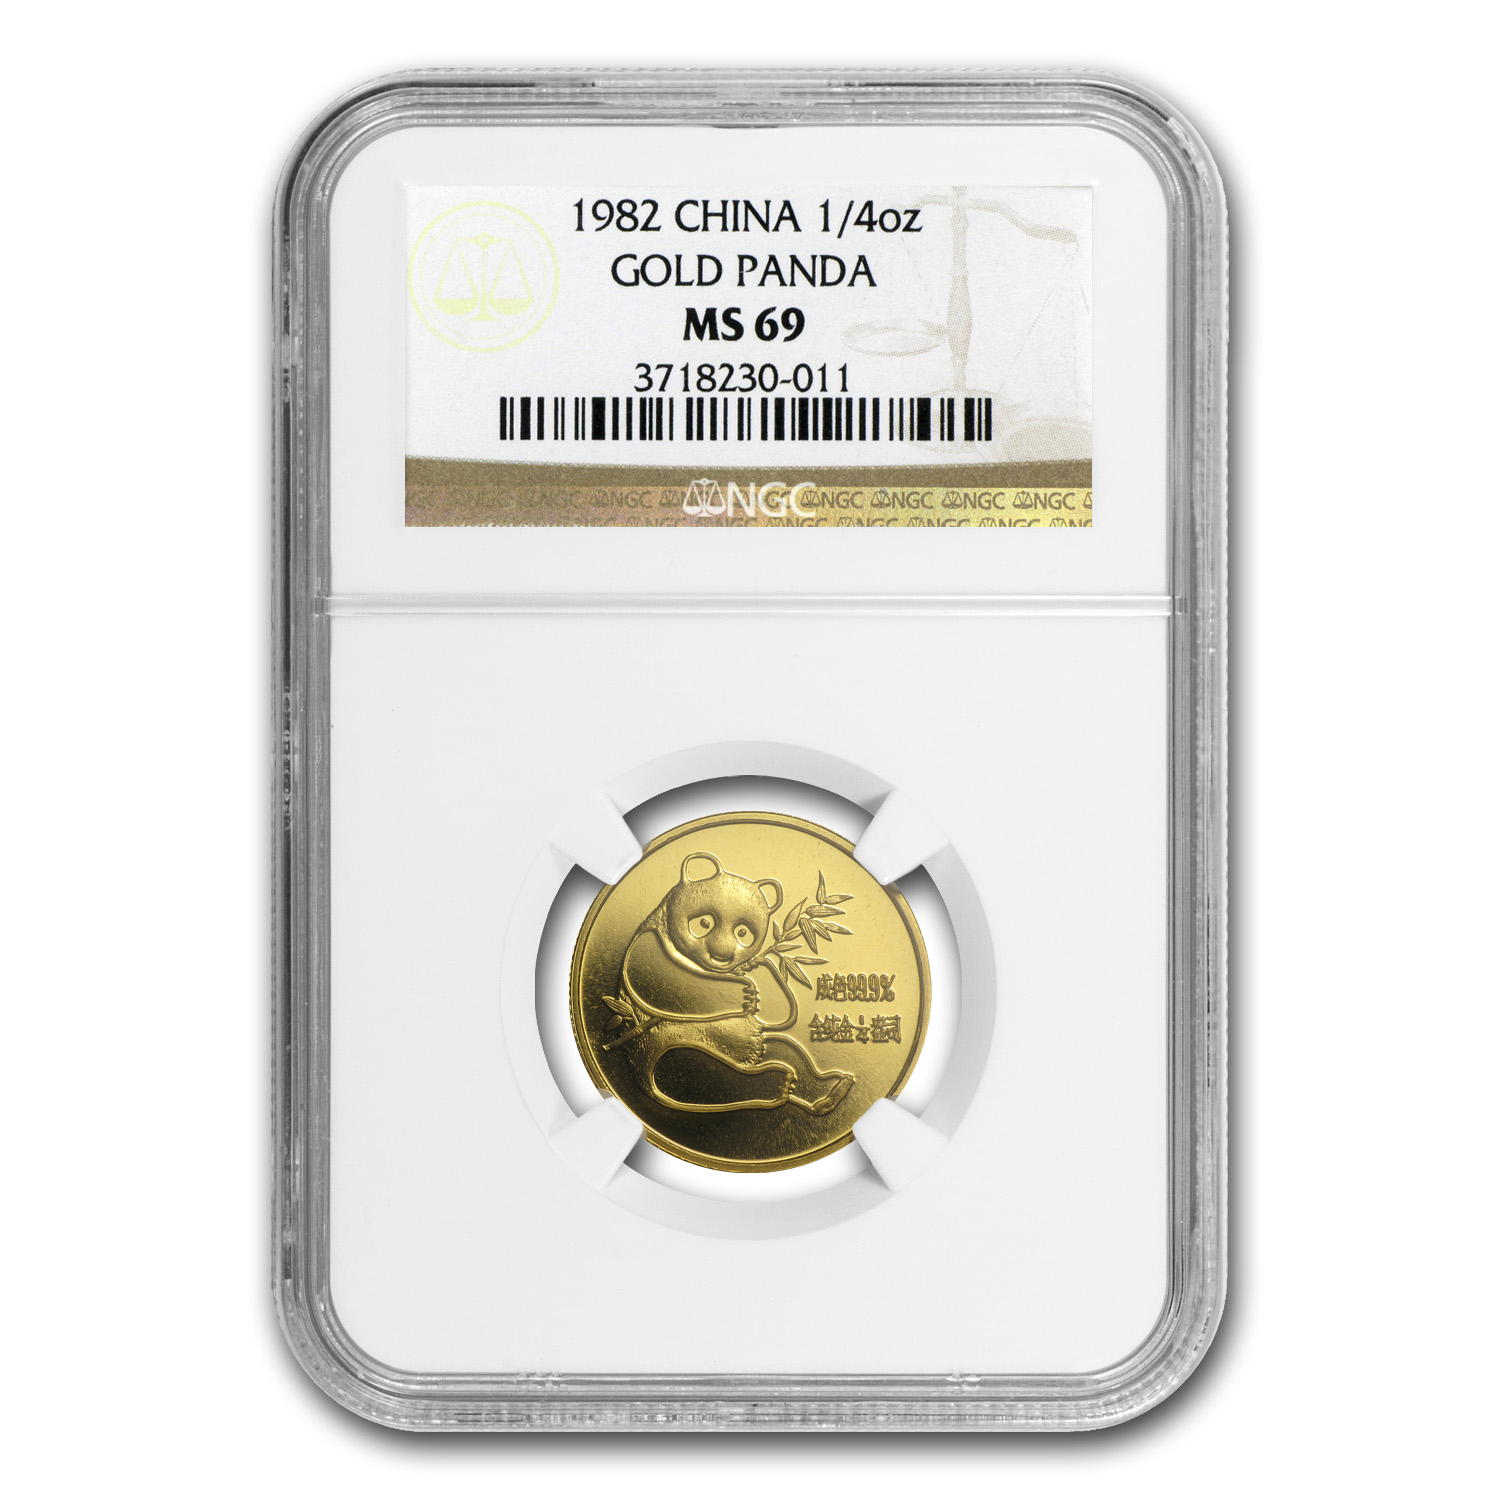 1982 China 1/4 oz Gold Panda MS-69 NGC